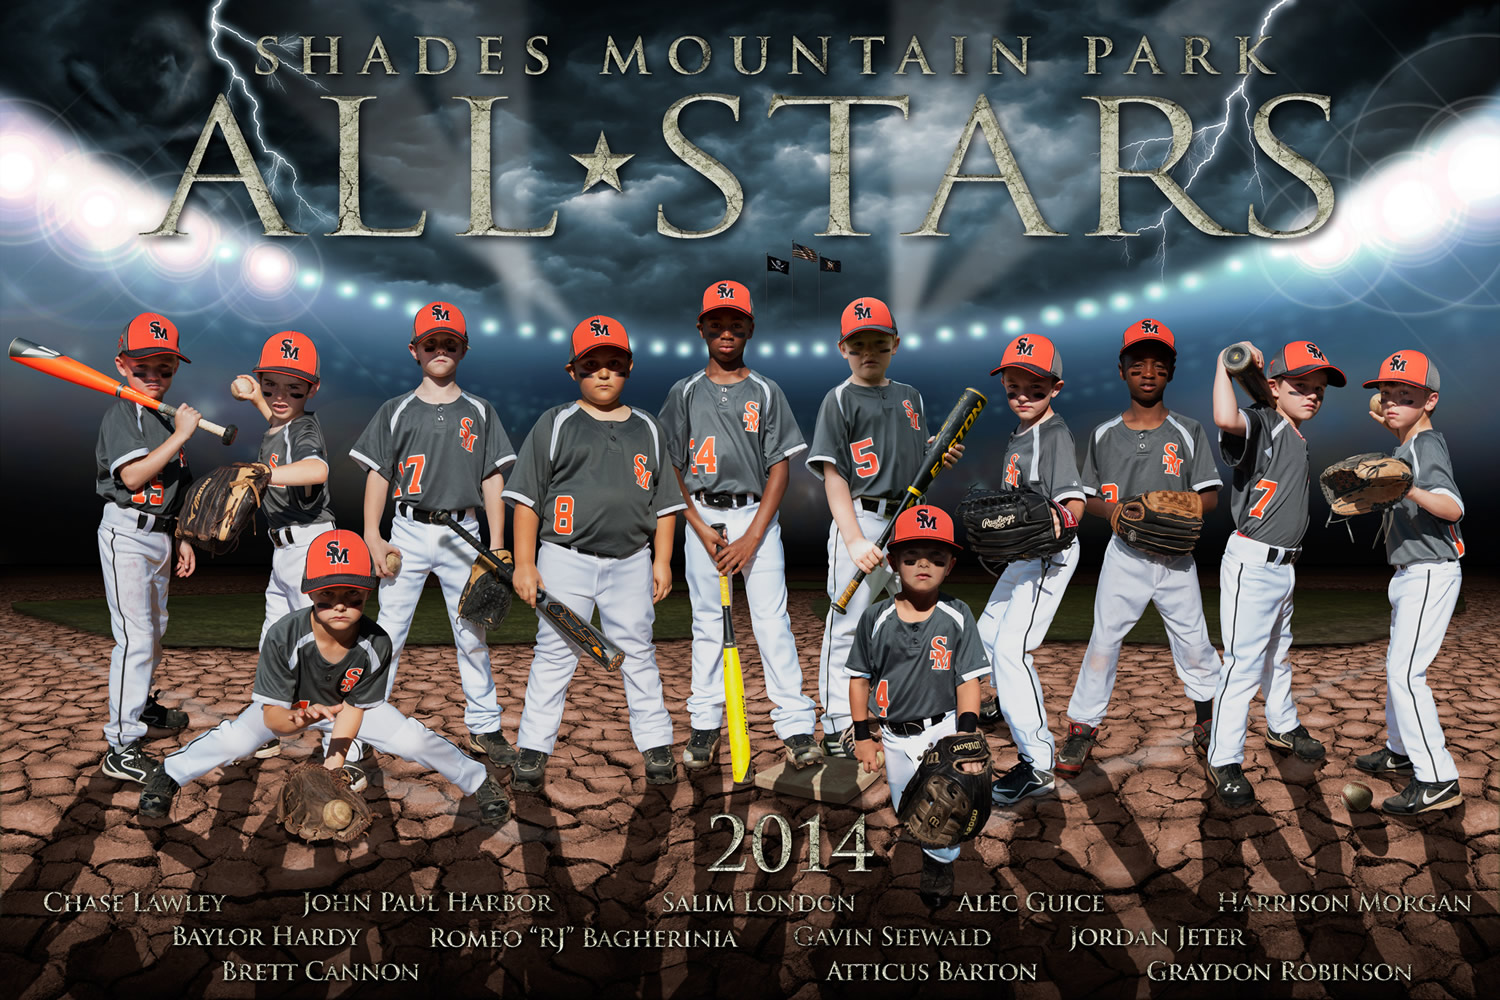 Shades Mountain Park All Stars